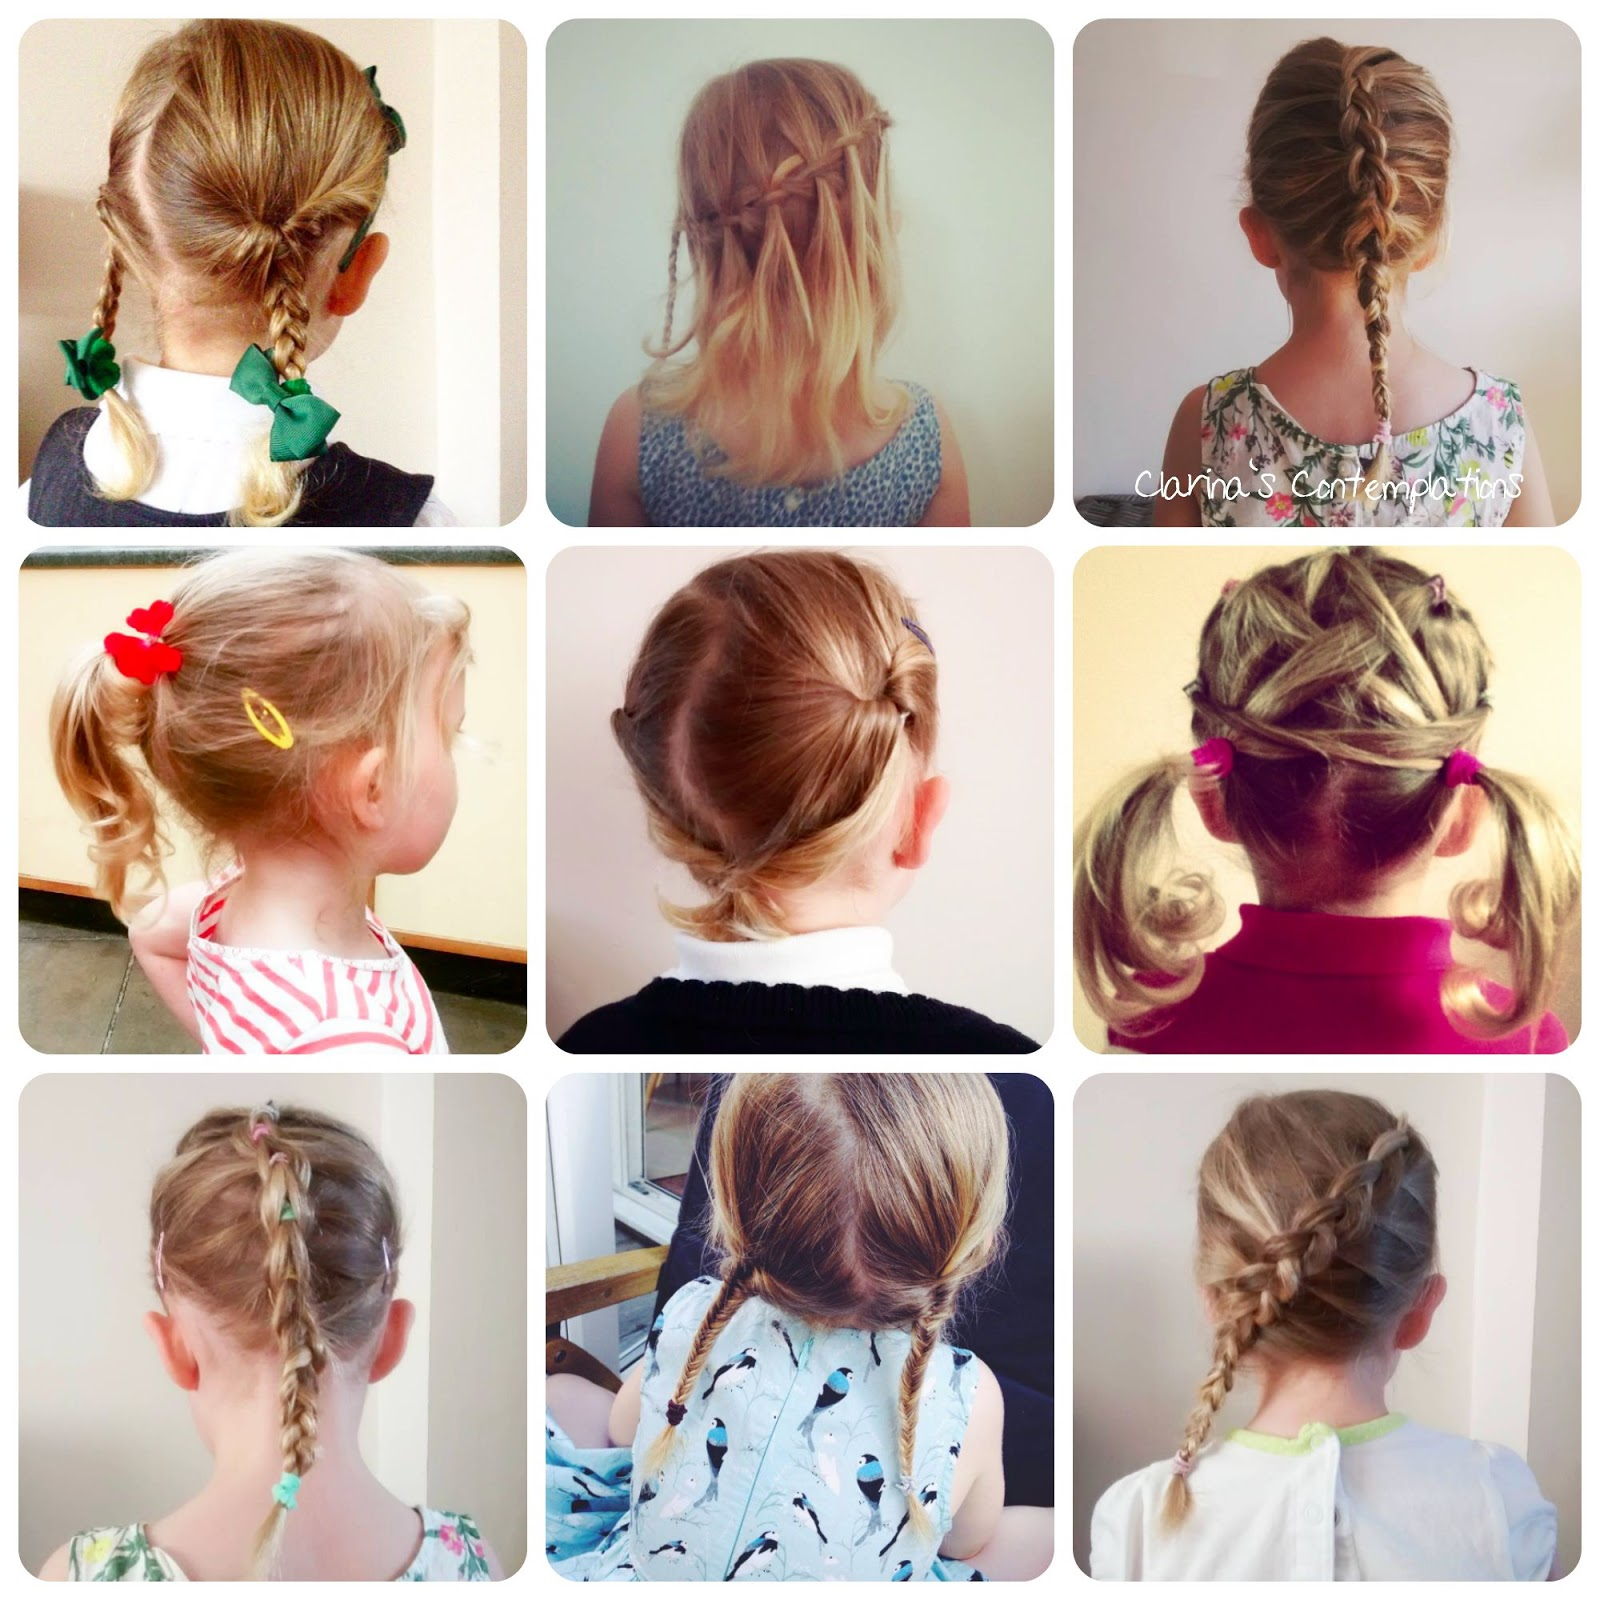 Clarina\'s Contemplations: 10 Lovely Little Girl Hairstyles...